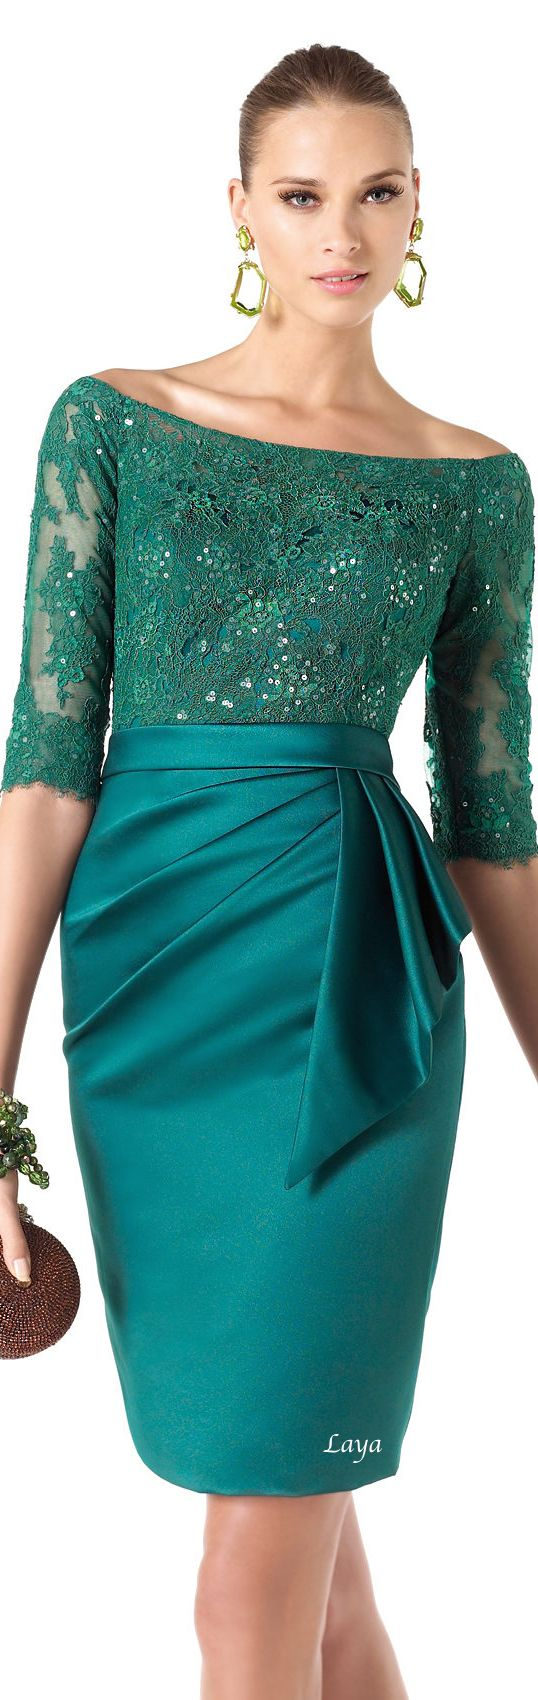 1176 best 5.1 Dresses - green images on Pinterest | Green gown ...